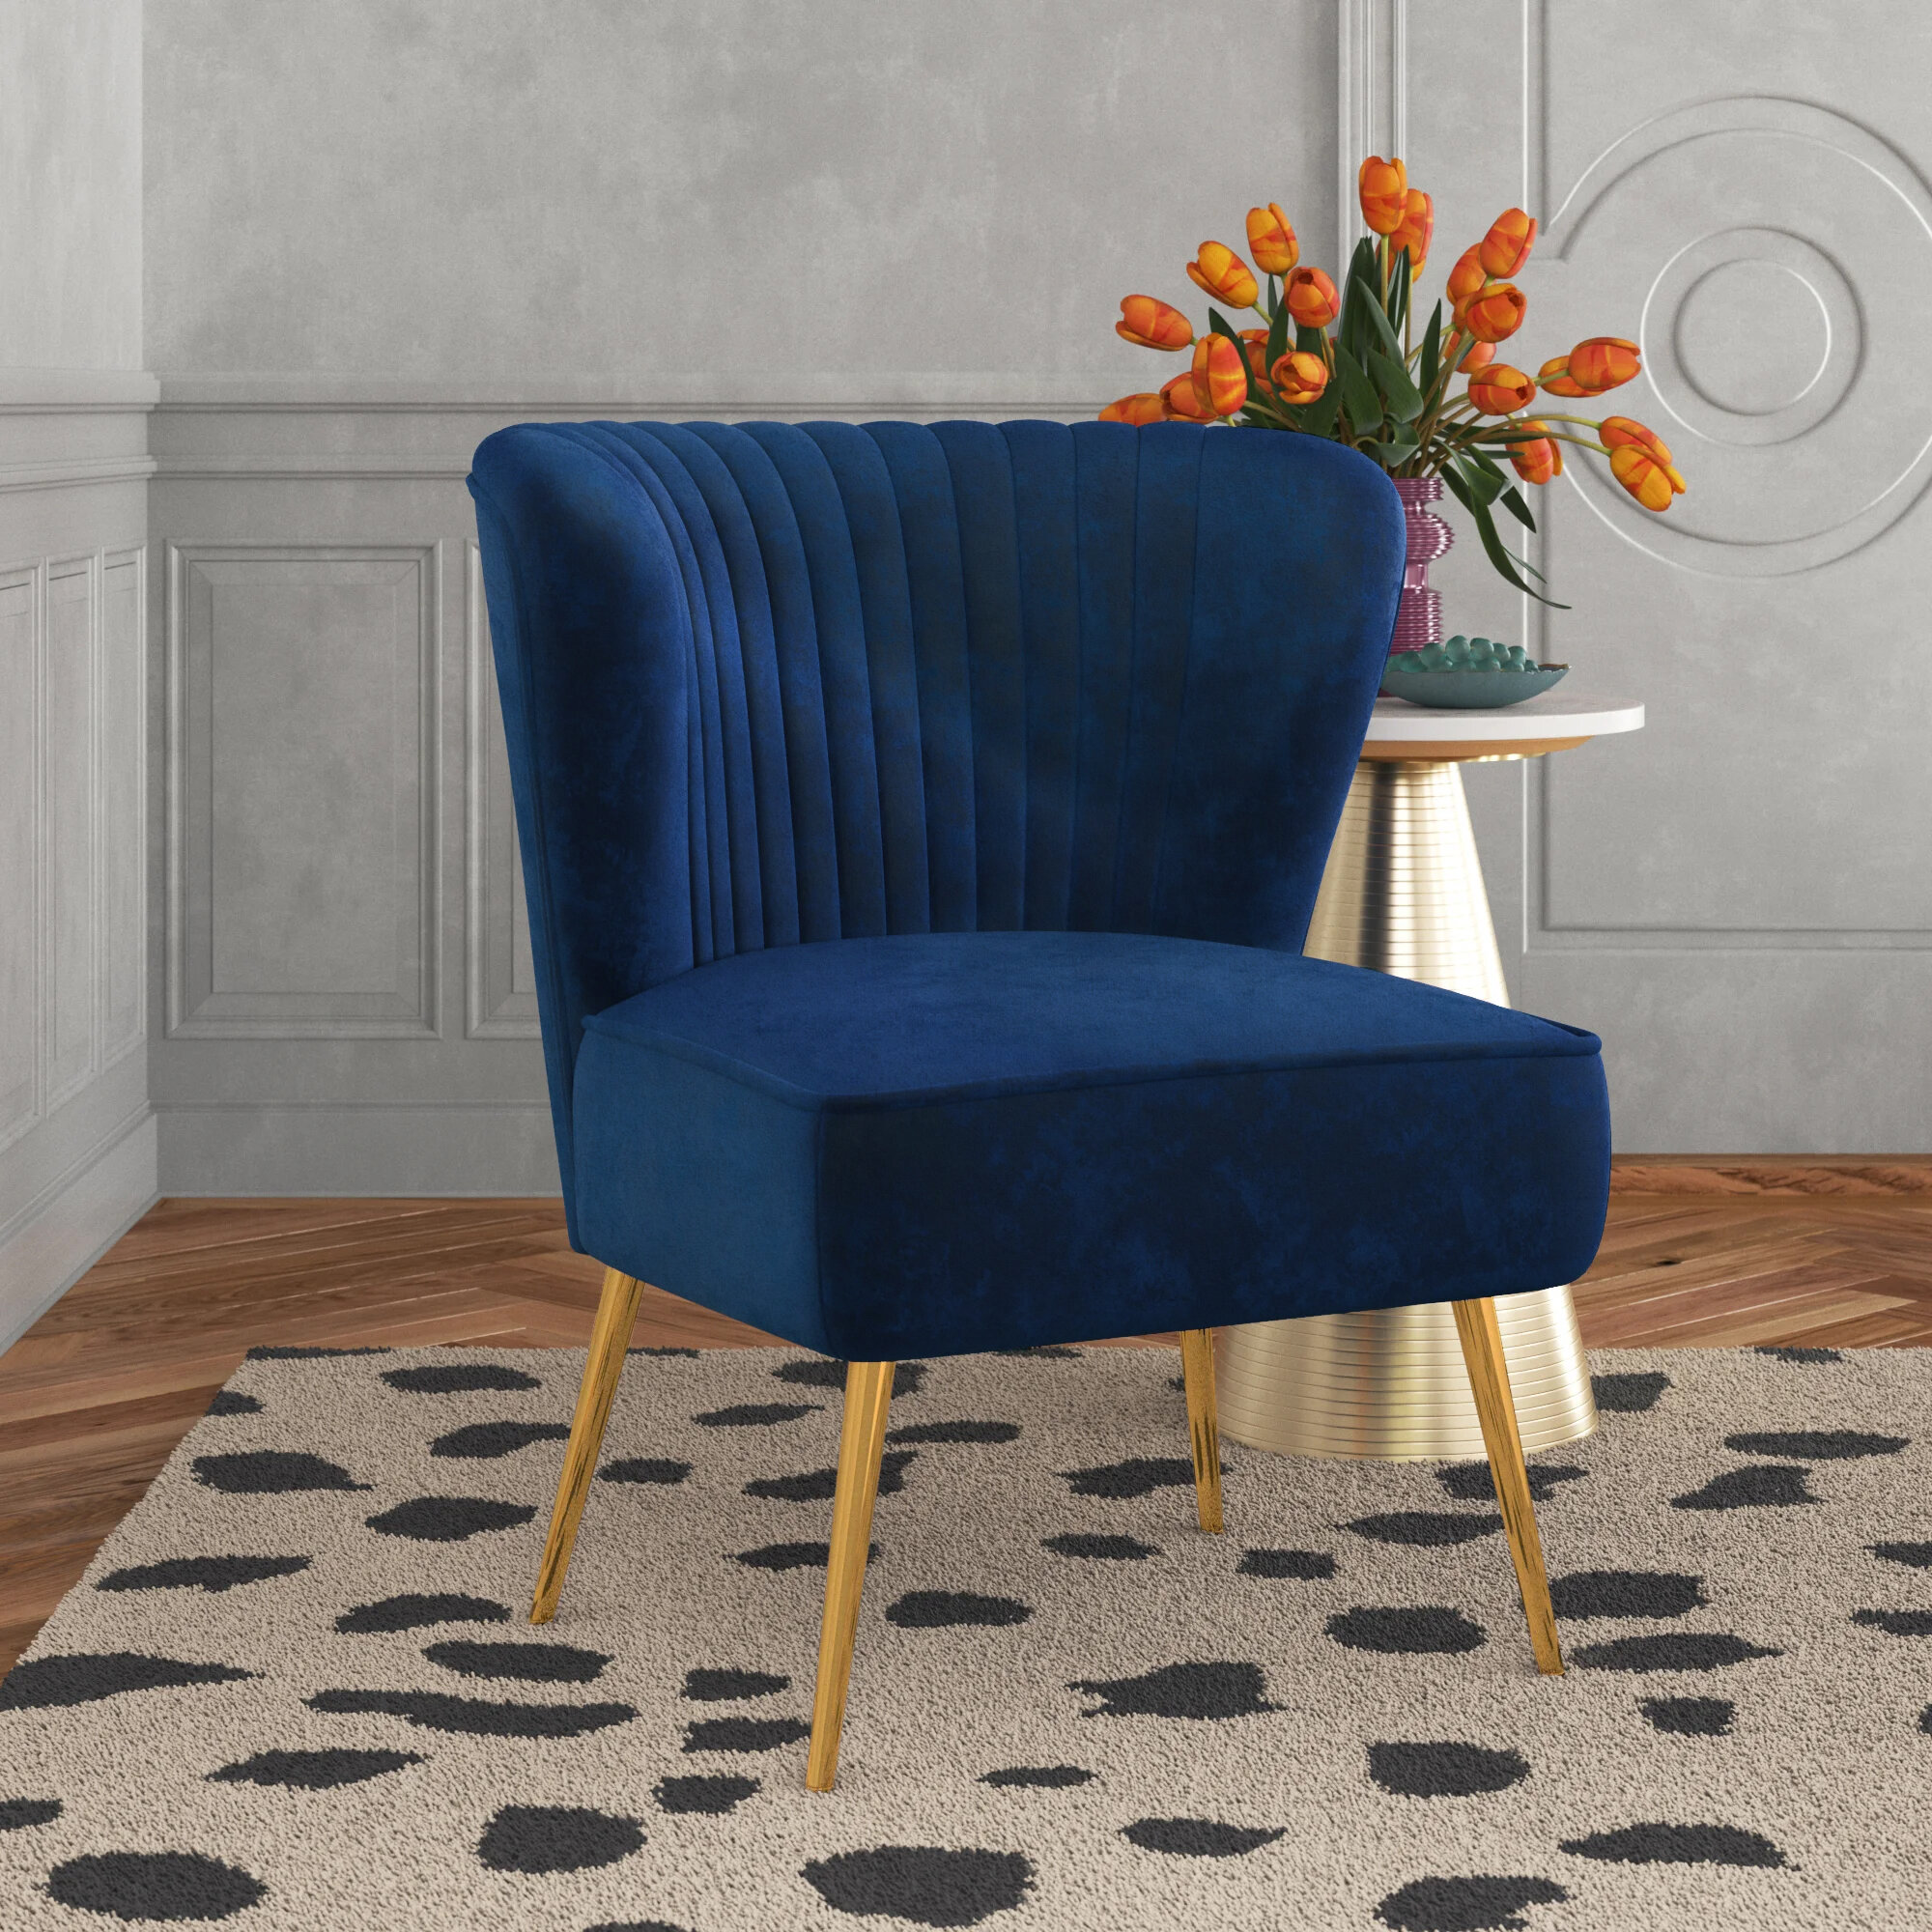 Accent Chairs  Up to 13% Off Through 13/13  Wayfair